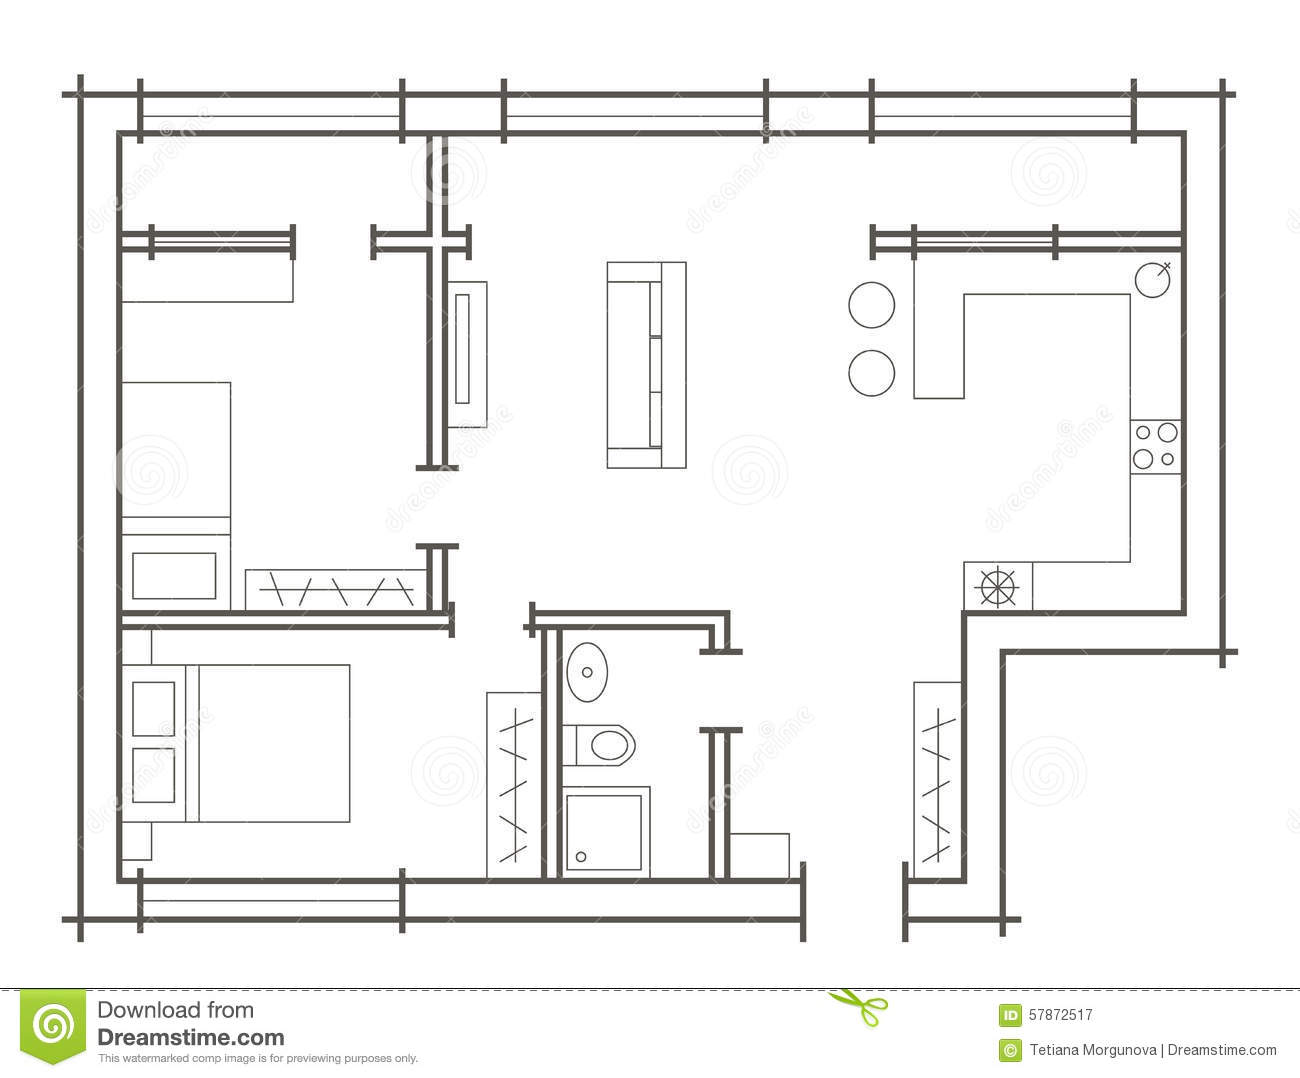 Plan sketch of two bedroom apartment stock vector - Architectural plan of two bedroom flat with dining room ...